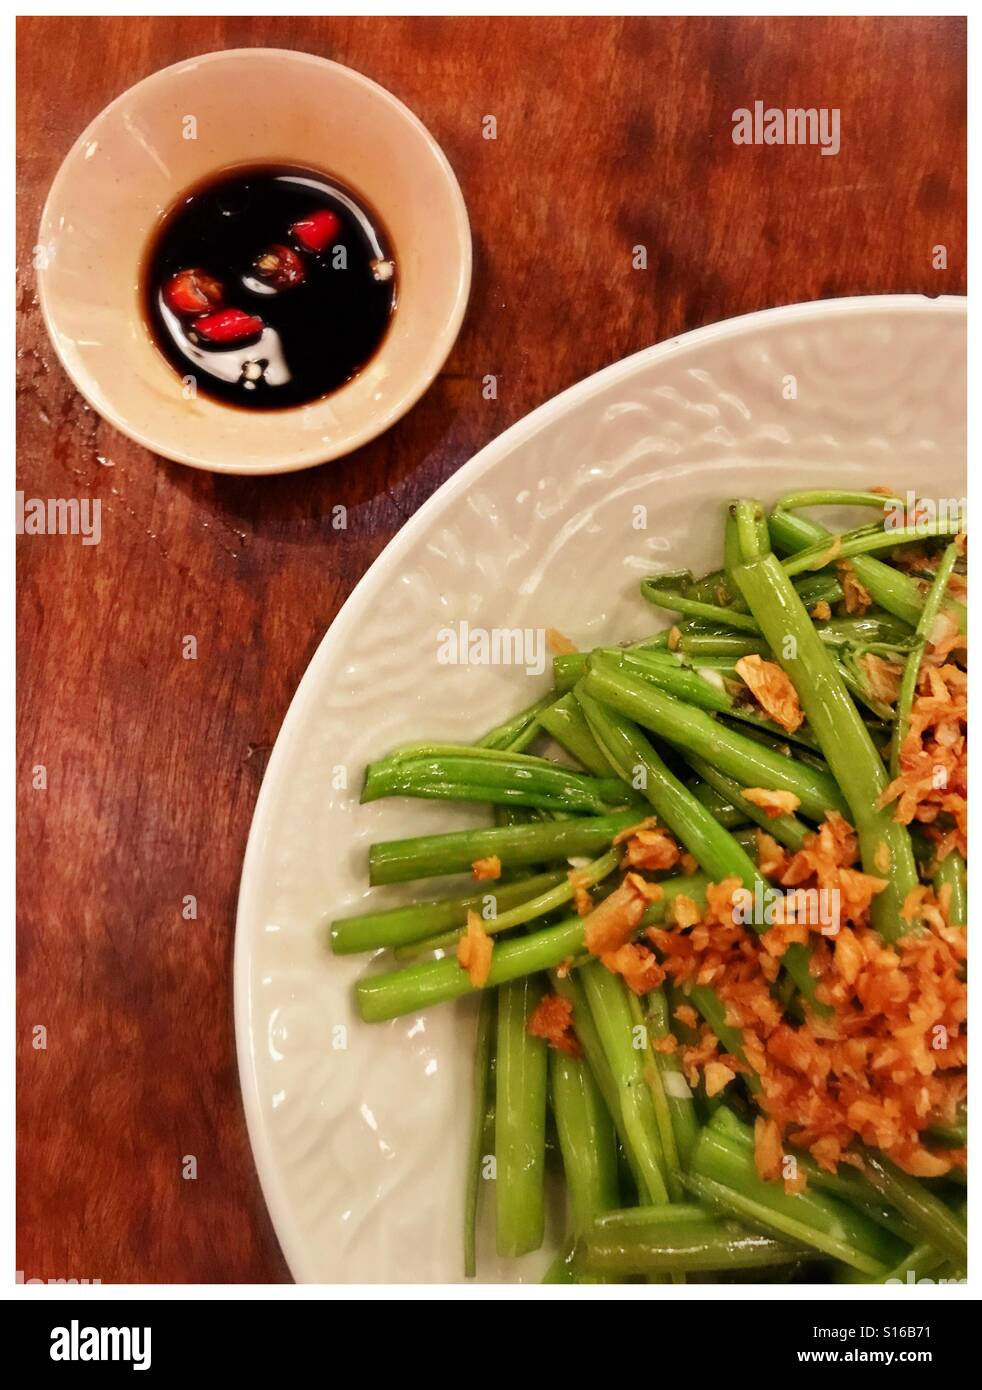 Vietnamese food in Ho Chi Minh City - Stock Image